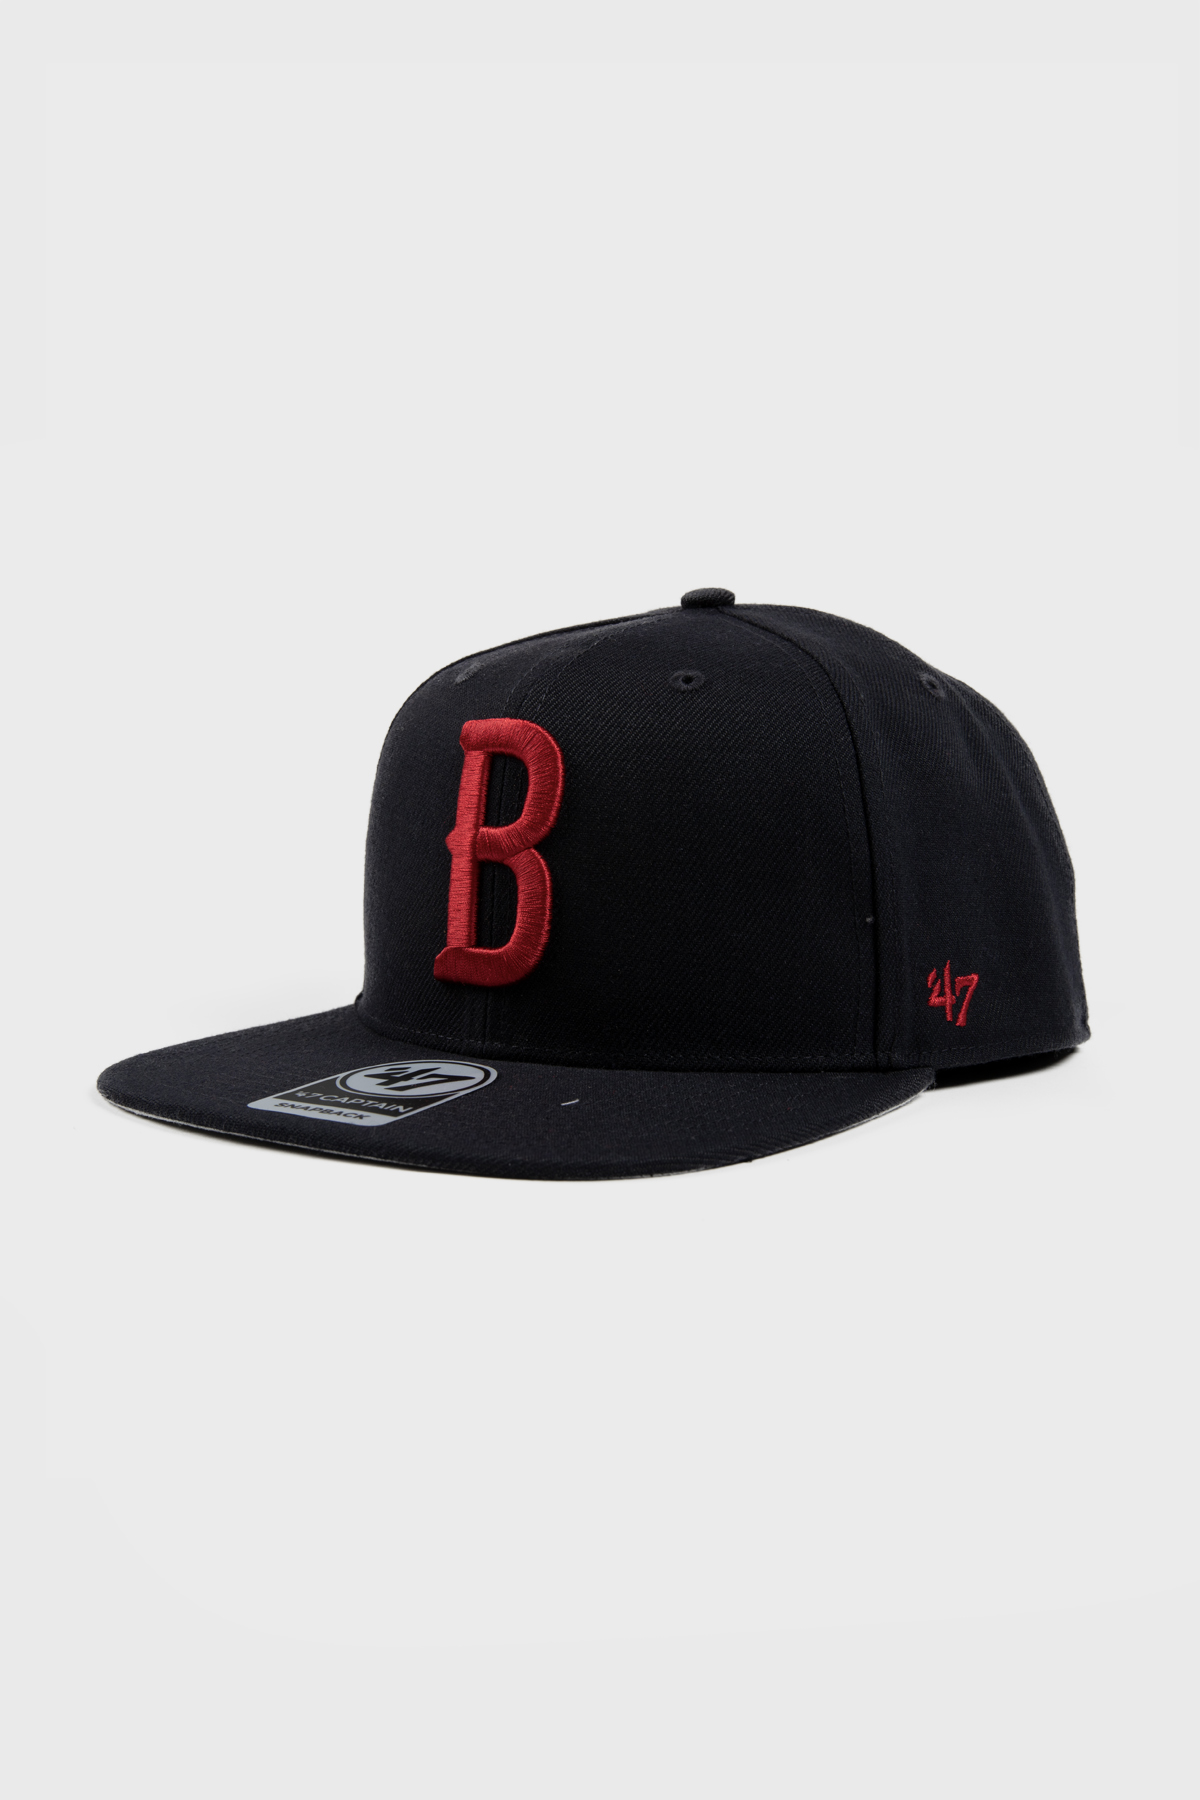 Berlin Braves - NAVY 'B' SNAPBACK - Black red